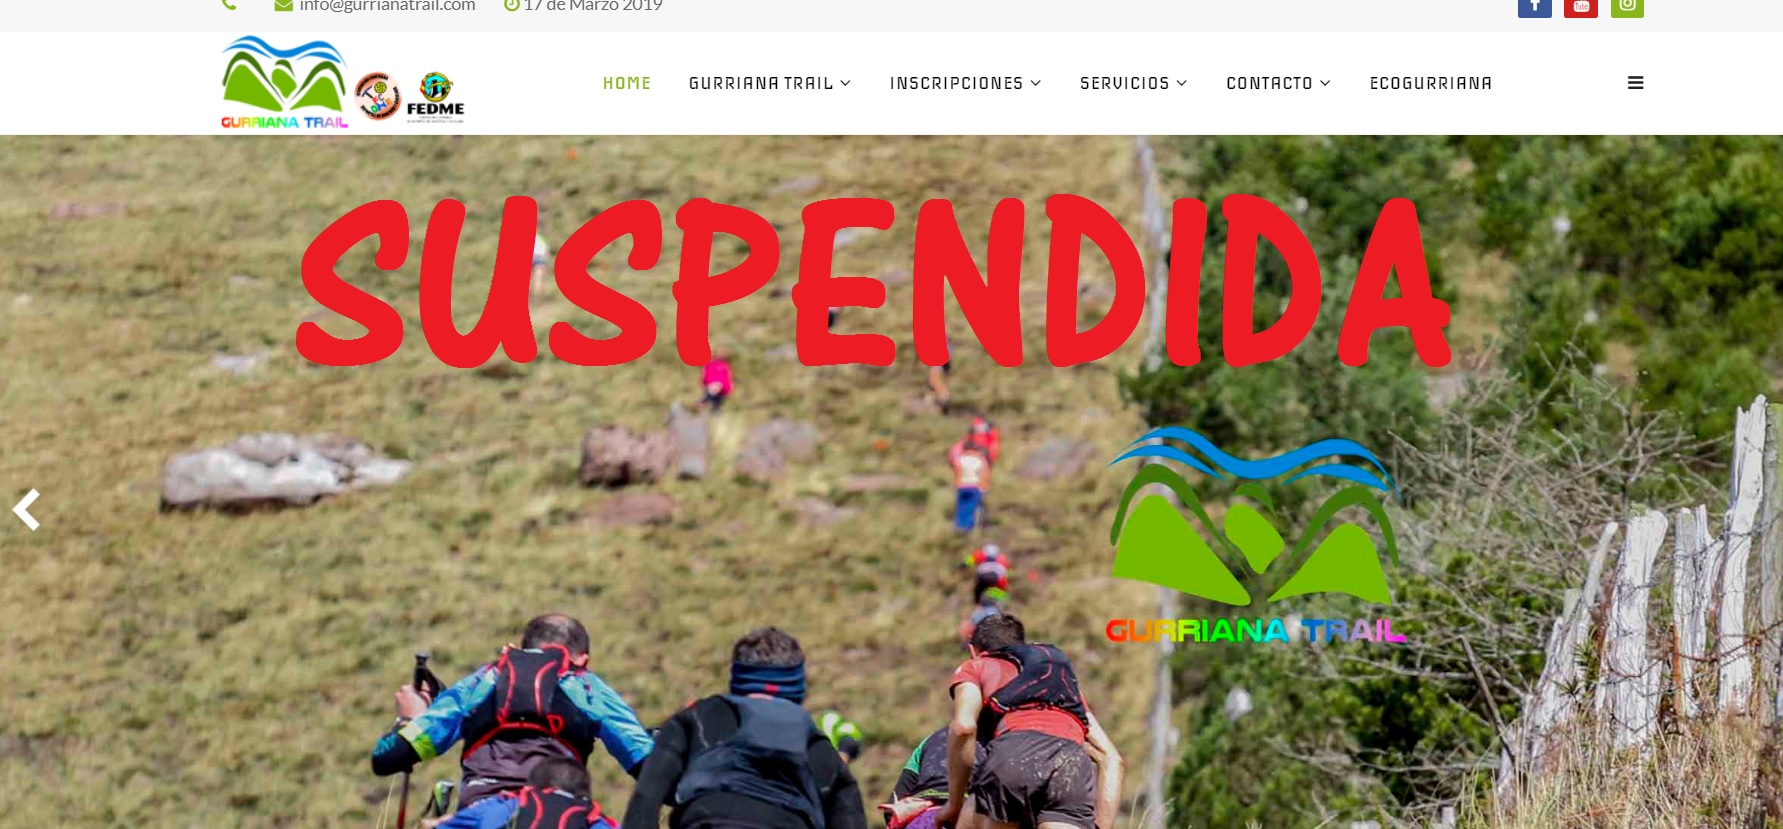 SUSPENDIDA LA GURRIANA TRAIL